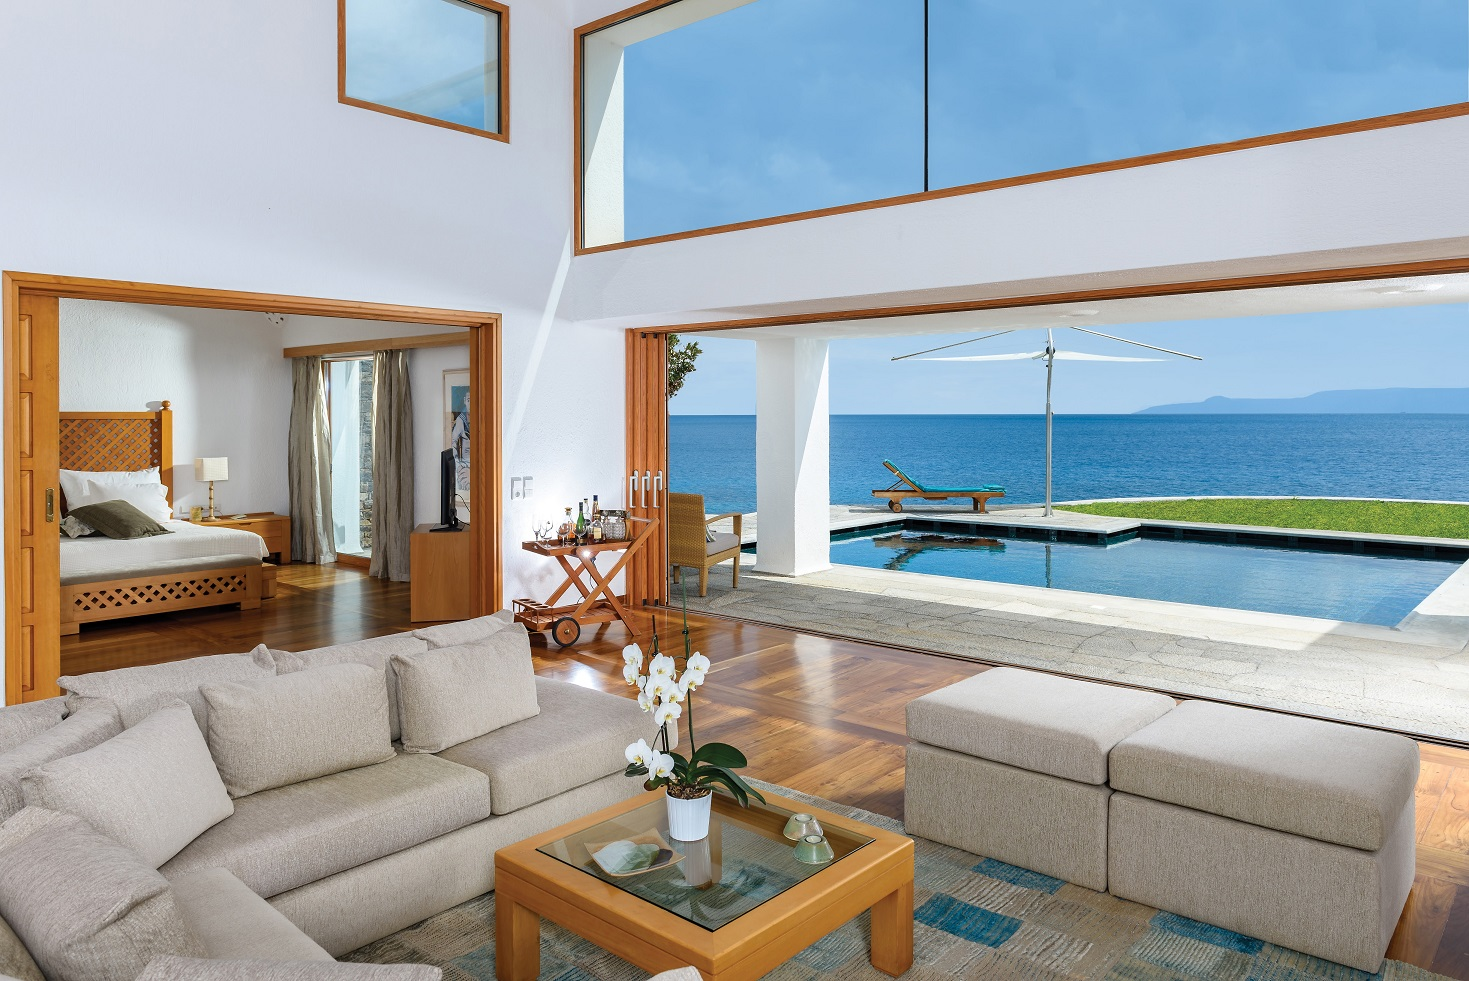 Elounda S.A. Hotels & Resorts, Greece